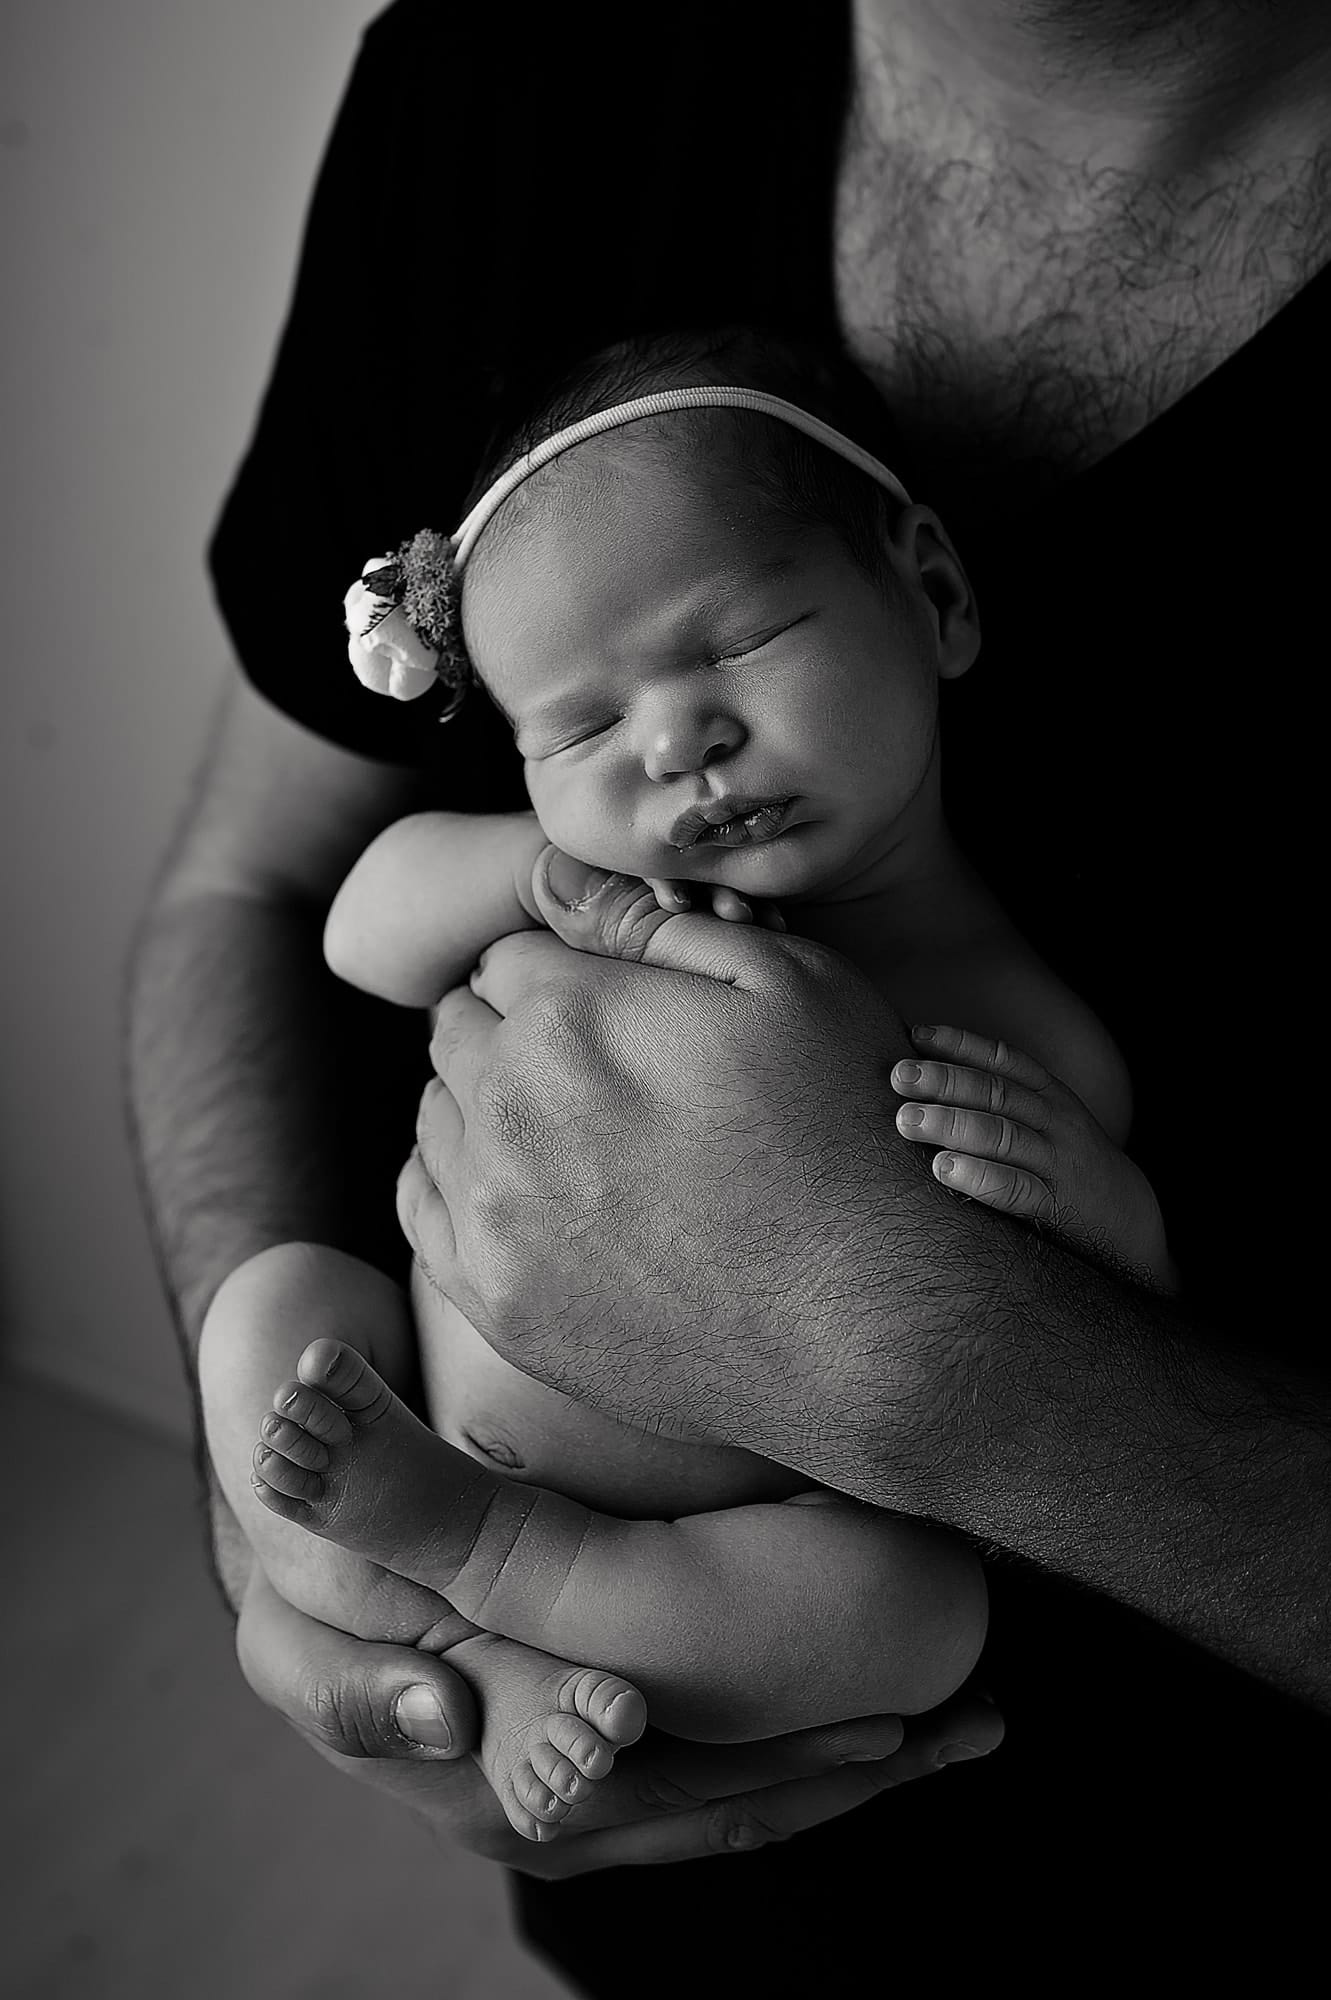 baby girl, daddy's hands, small, black and white, baby pictures, chislehurst, london